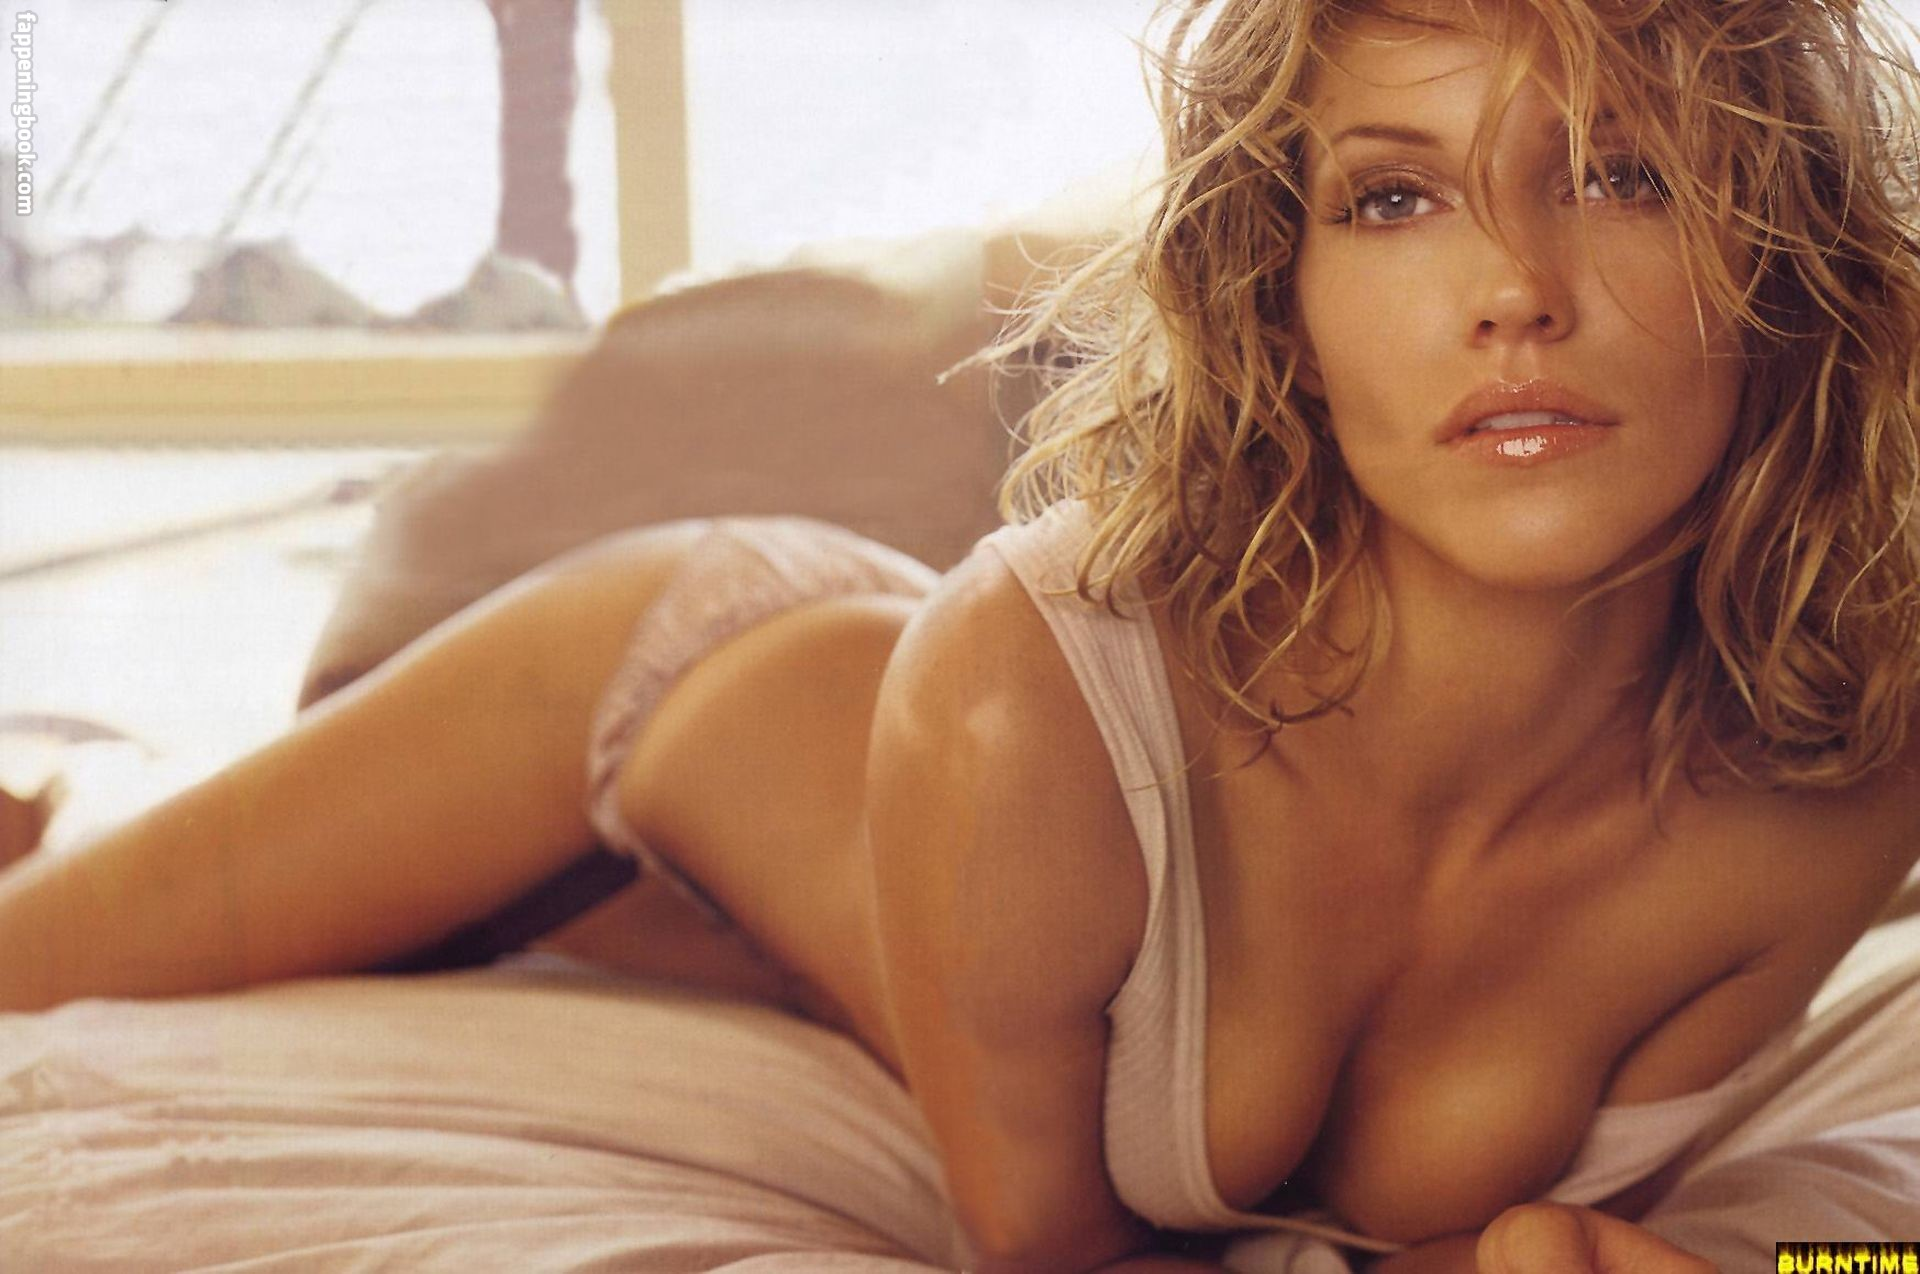 Tricia Helfer Nude, Sexy, The Fappening, Uncensored - Photo ...